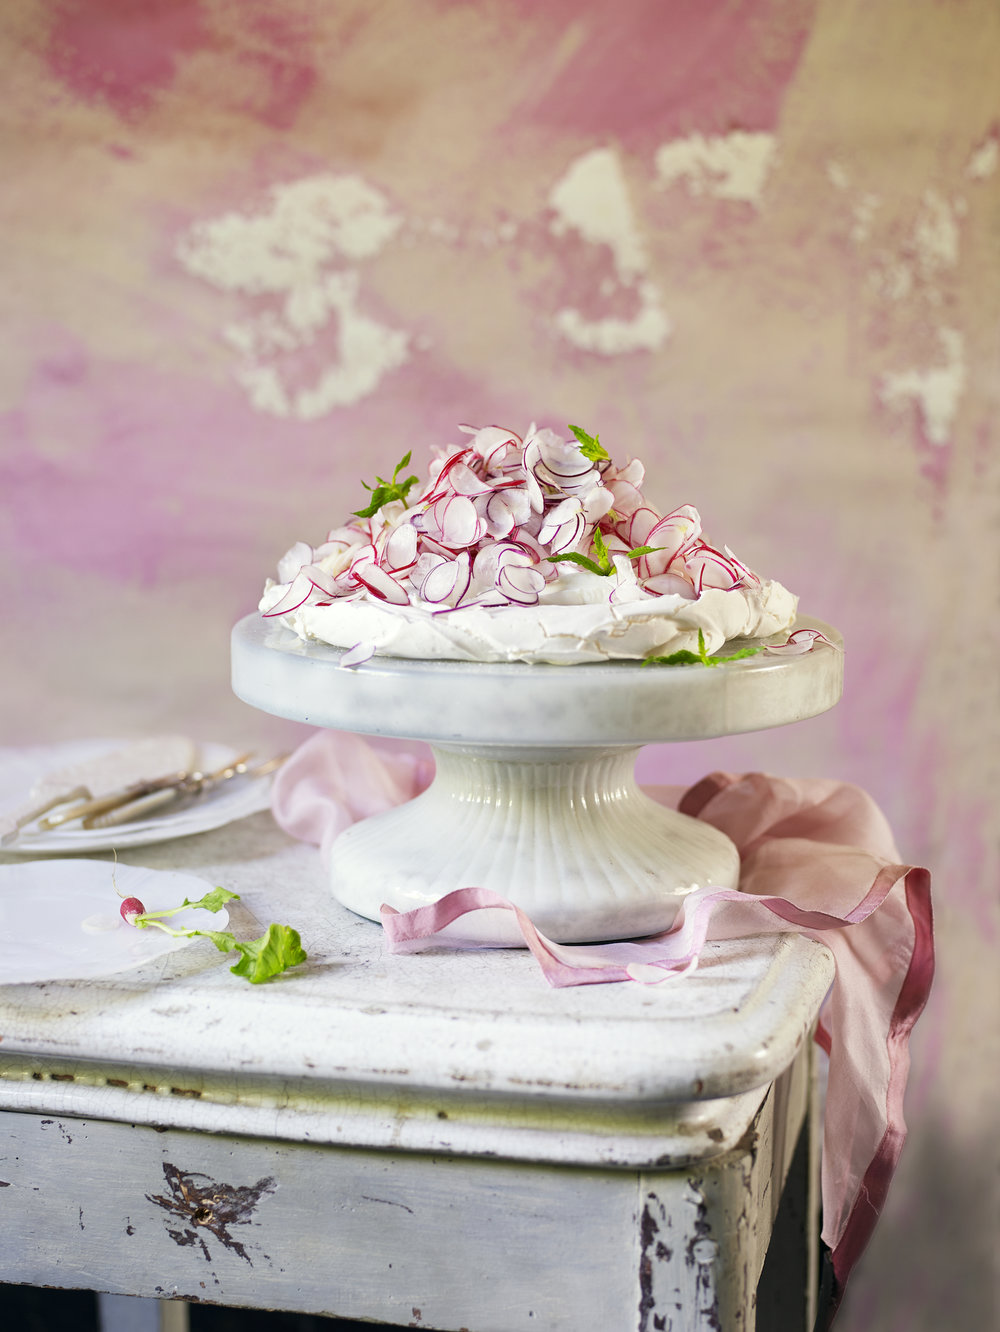 Radish Pavlova - Egg-free meringue made (as if by magic!) from chickpeas, topped with rosewater-infused radish